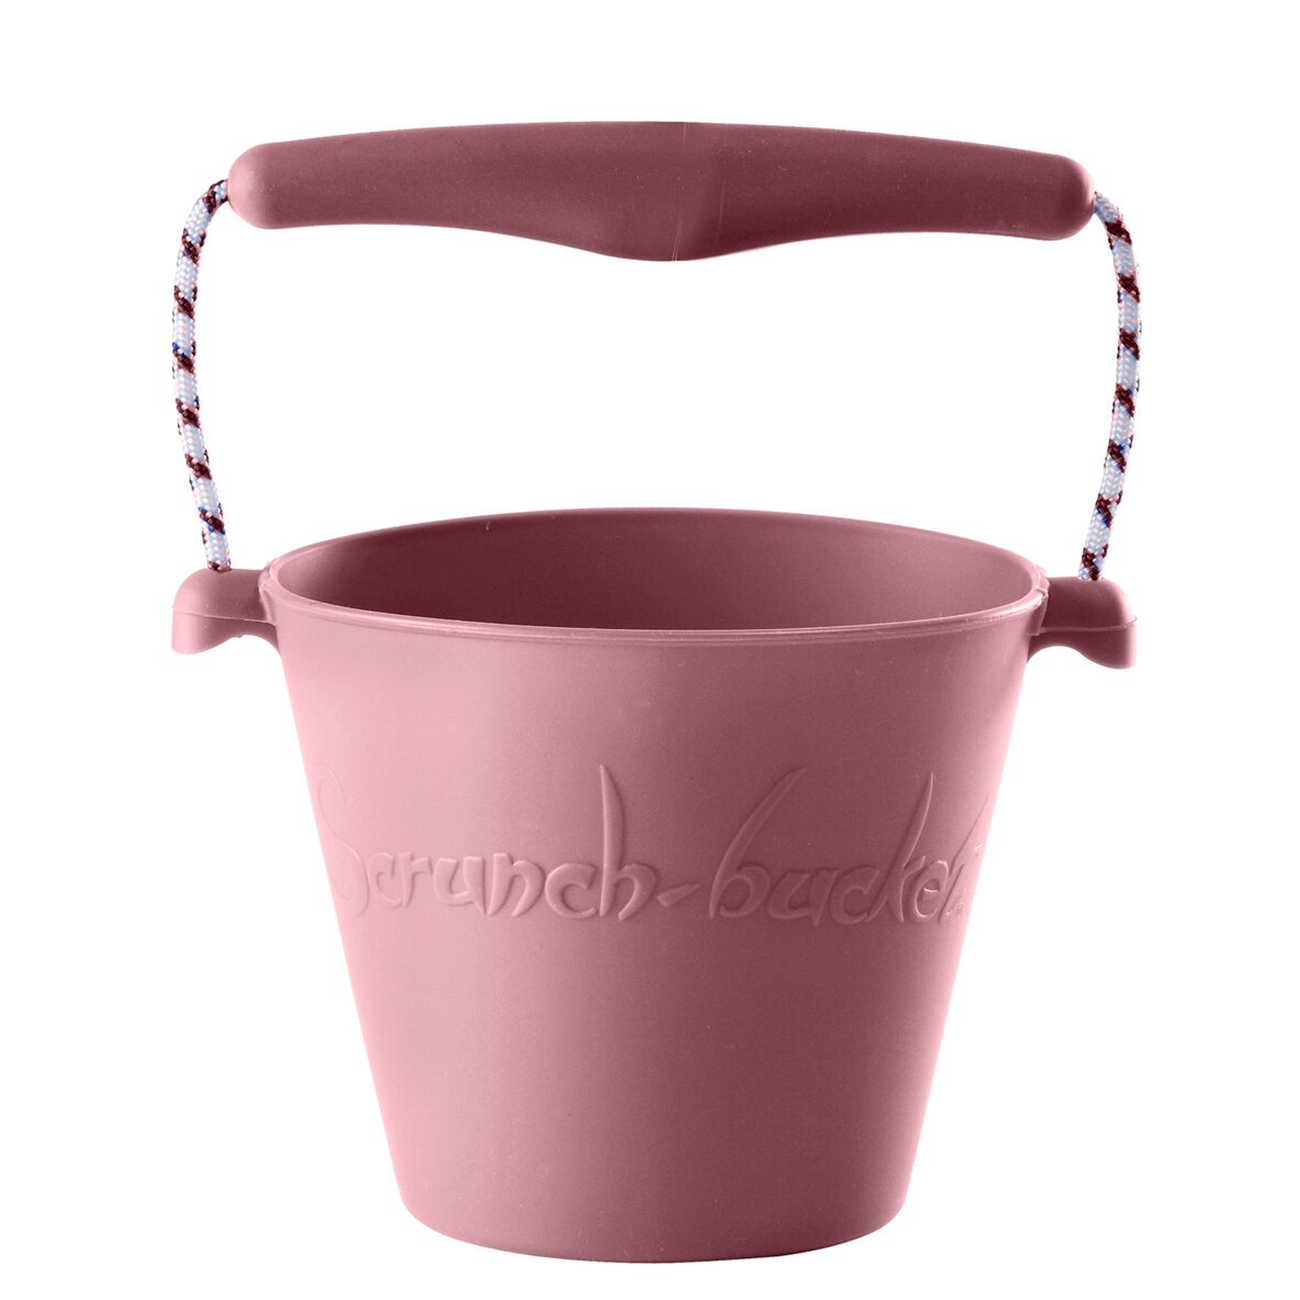 scrunch-bucket-dustyrose-rose-rosa-spand-bucket-strand-beach-play-toys-leg-1